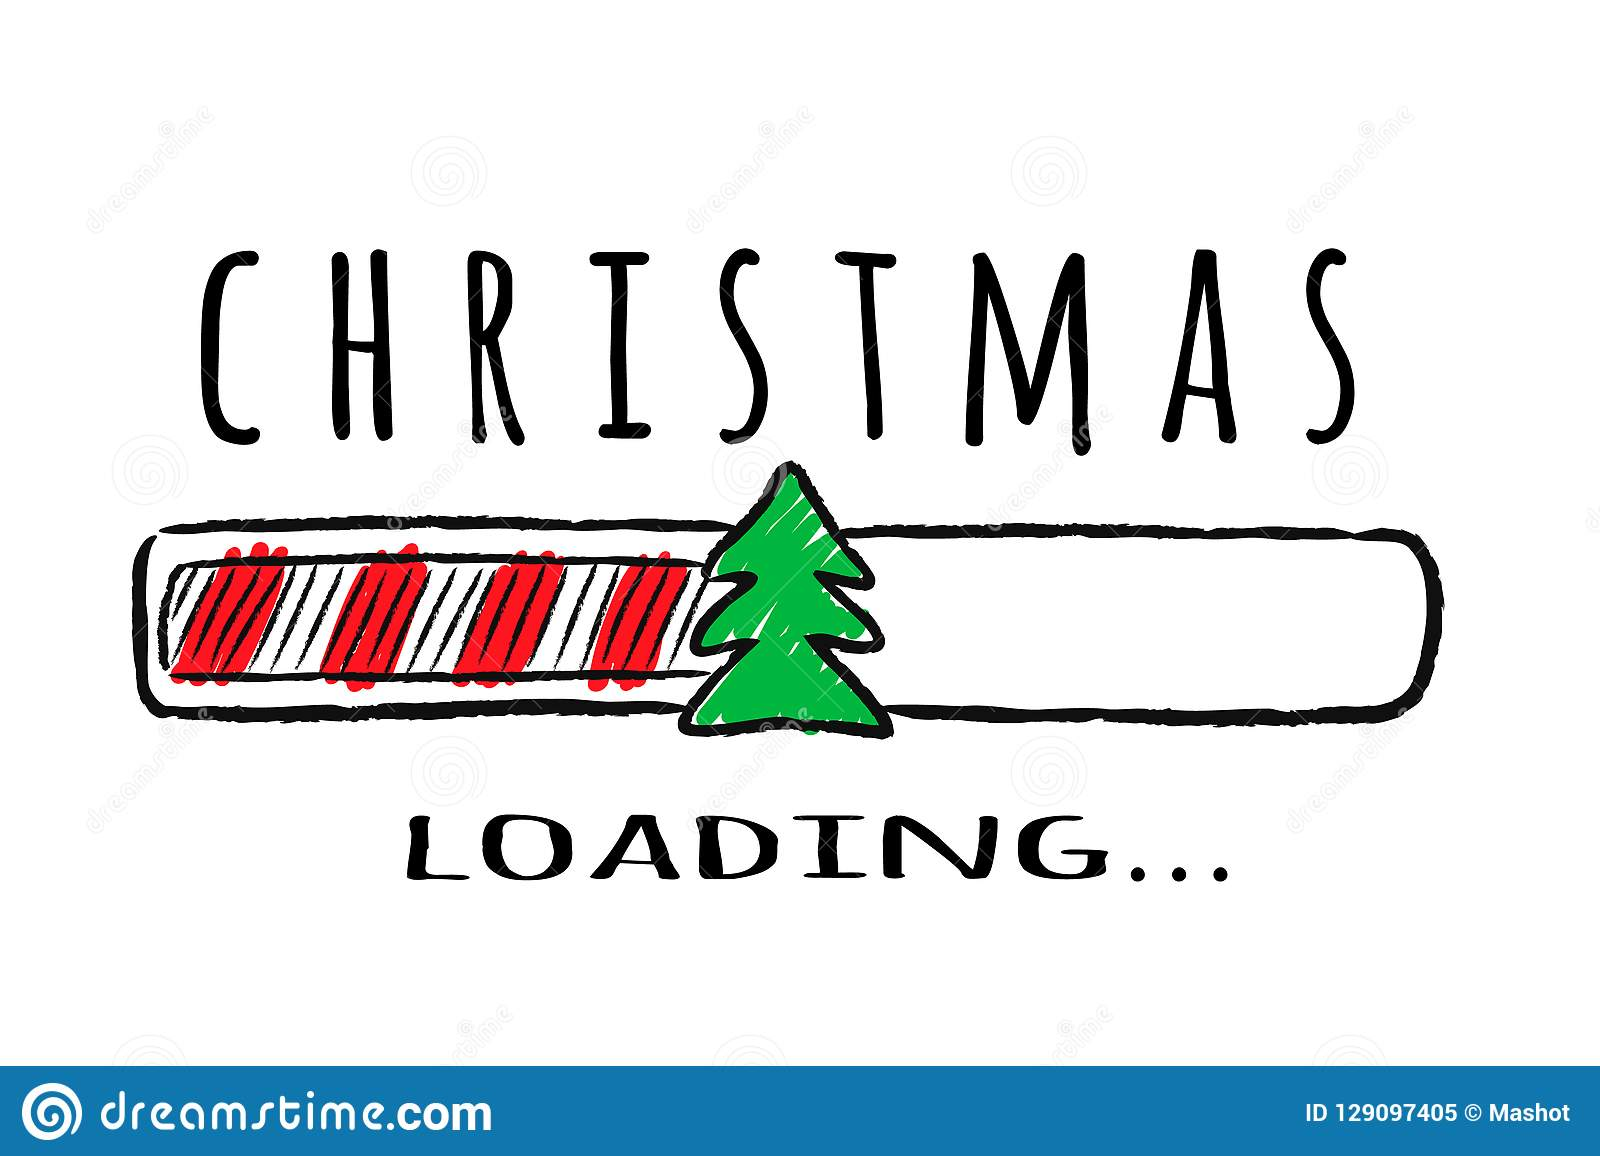 Progress bar with inscription - Christmas loading and fir-tree in sketchy style.